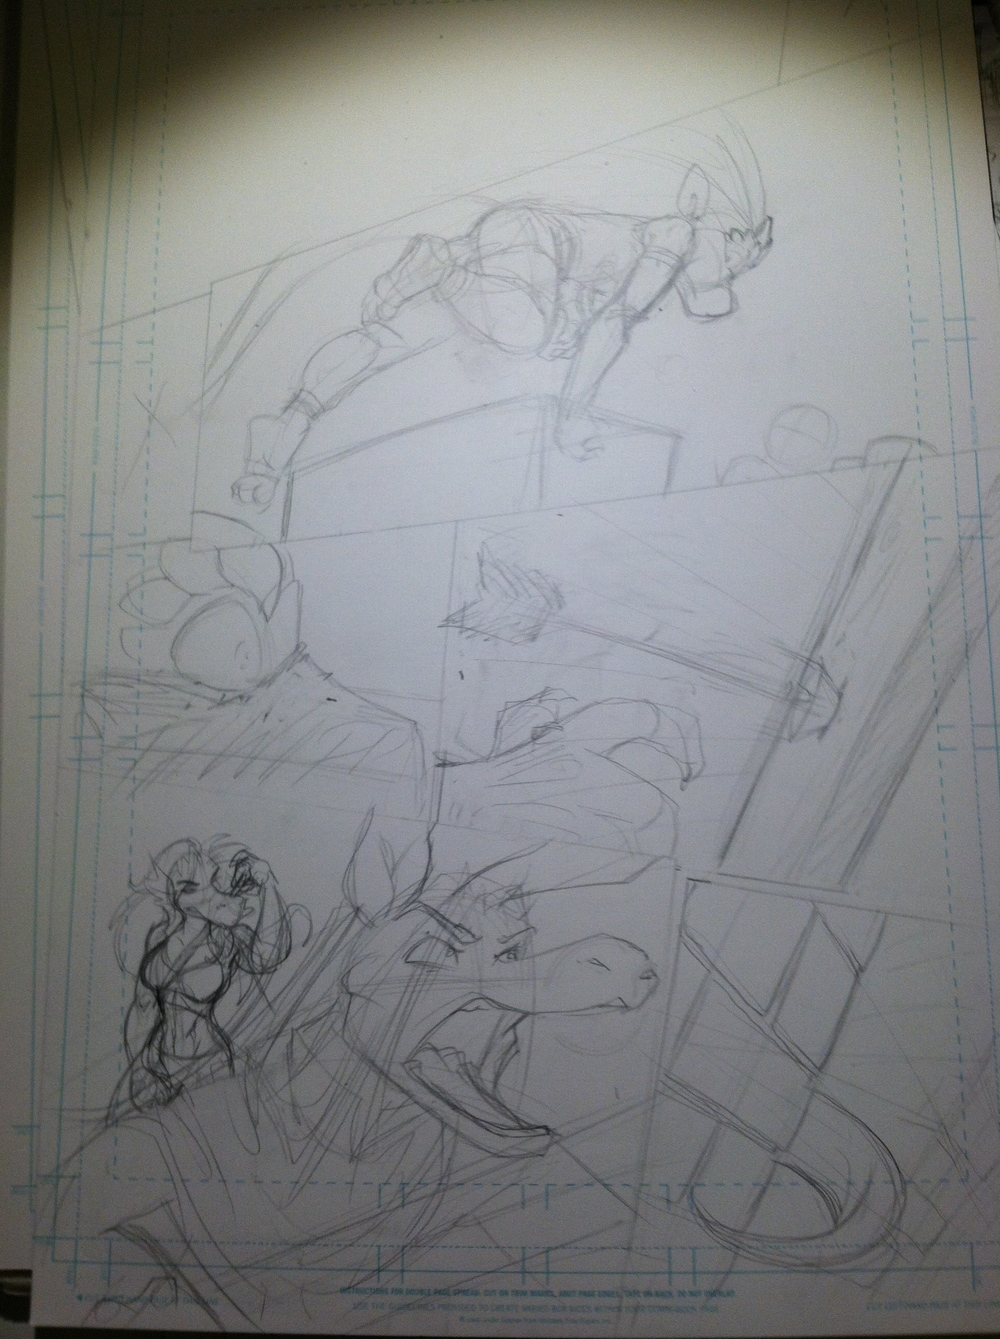 I apologize for the less-than-awesome iPhone photos, but I didn't want to give TOO much away with a clear scan. You'll just have to wait until it's finished!